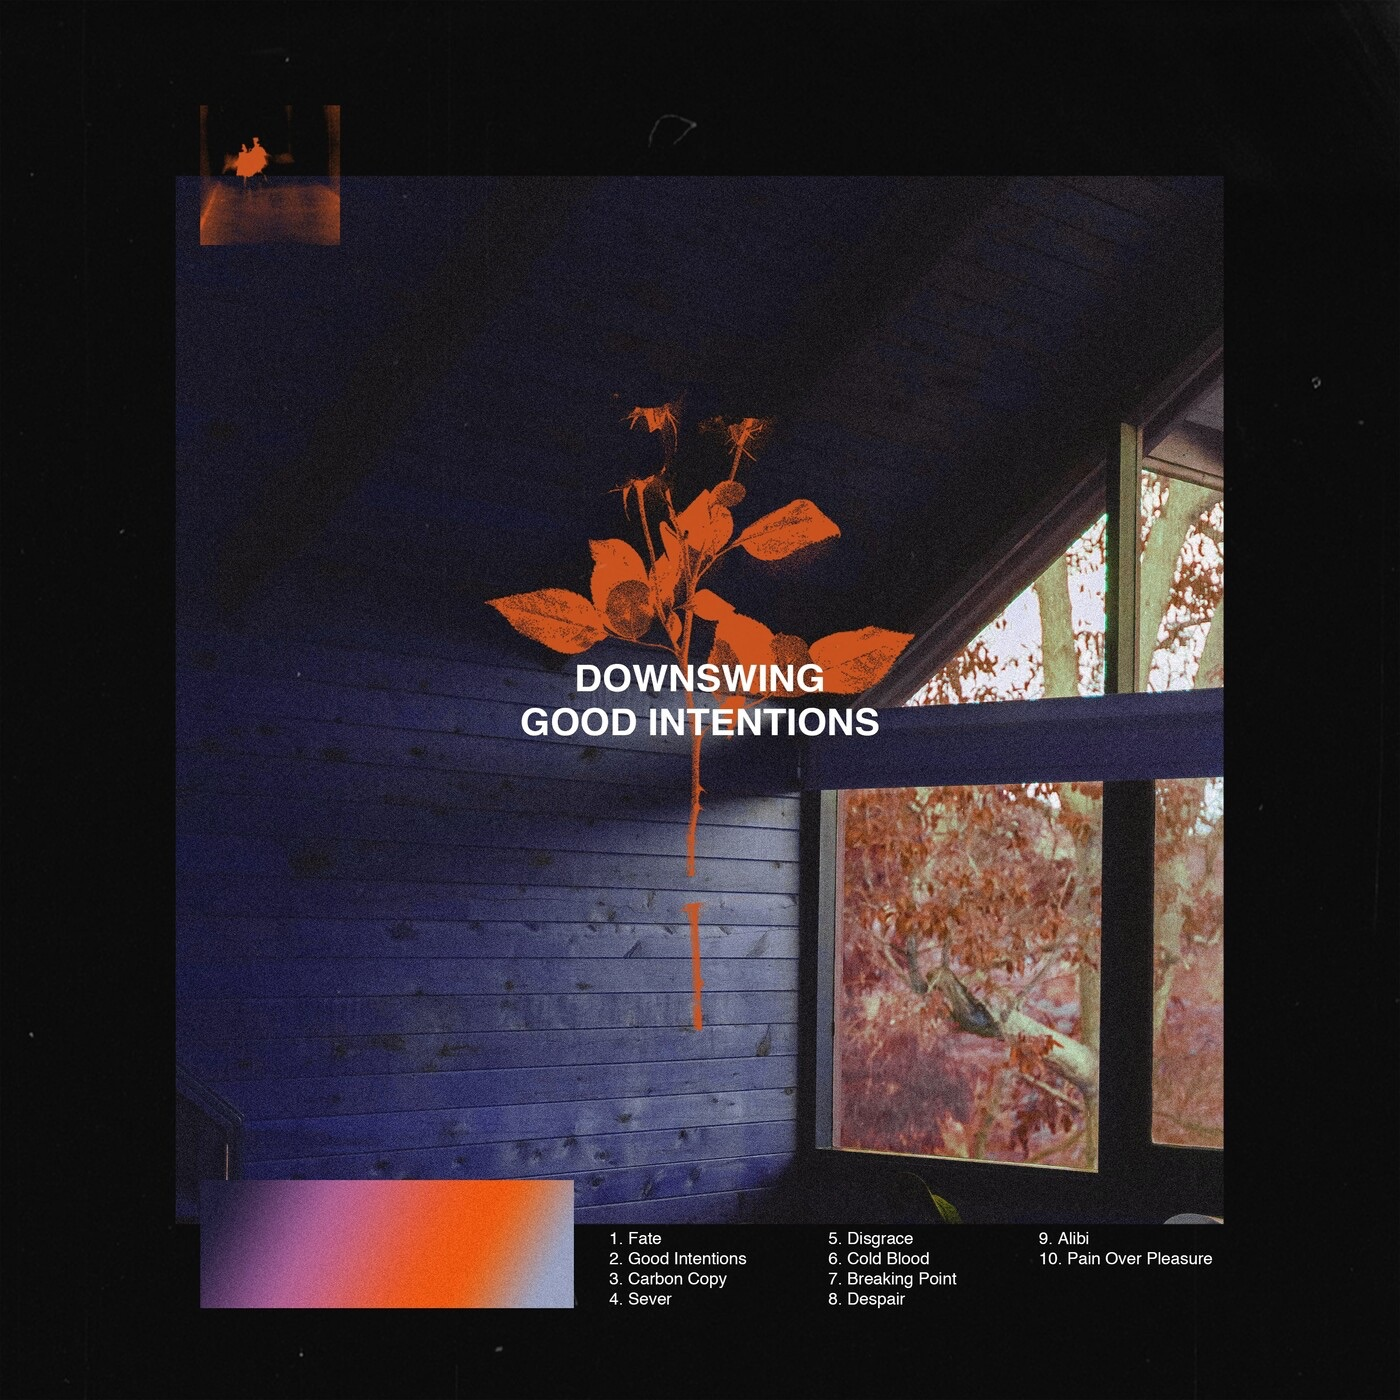 Downswing - Good Intentions (2020)